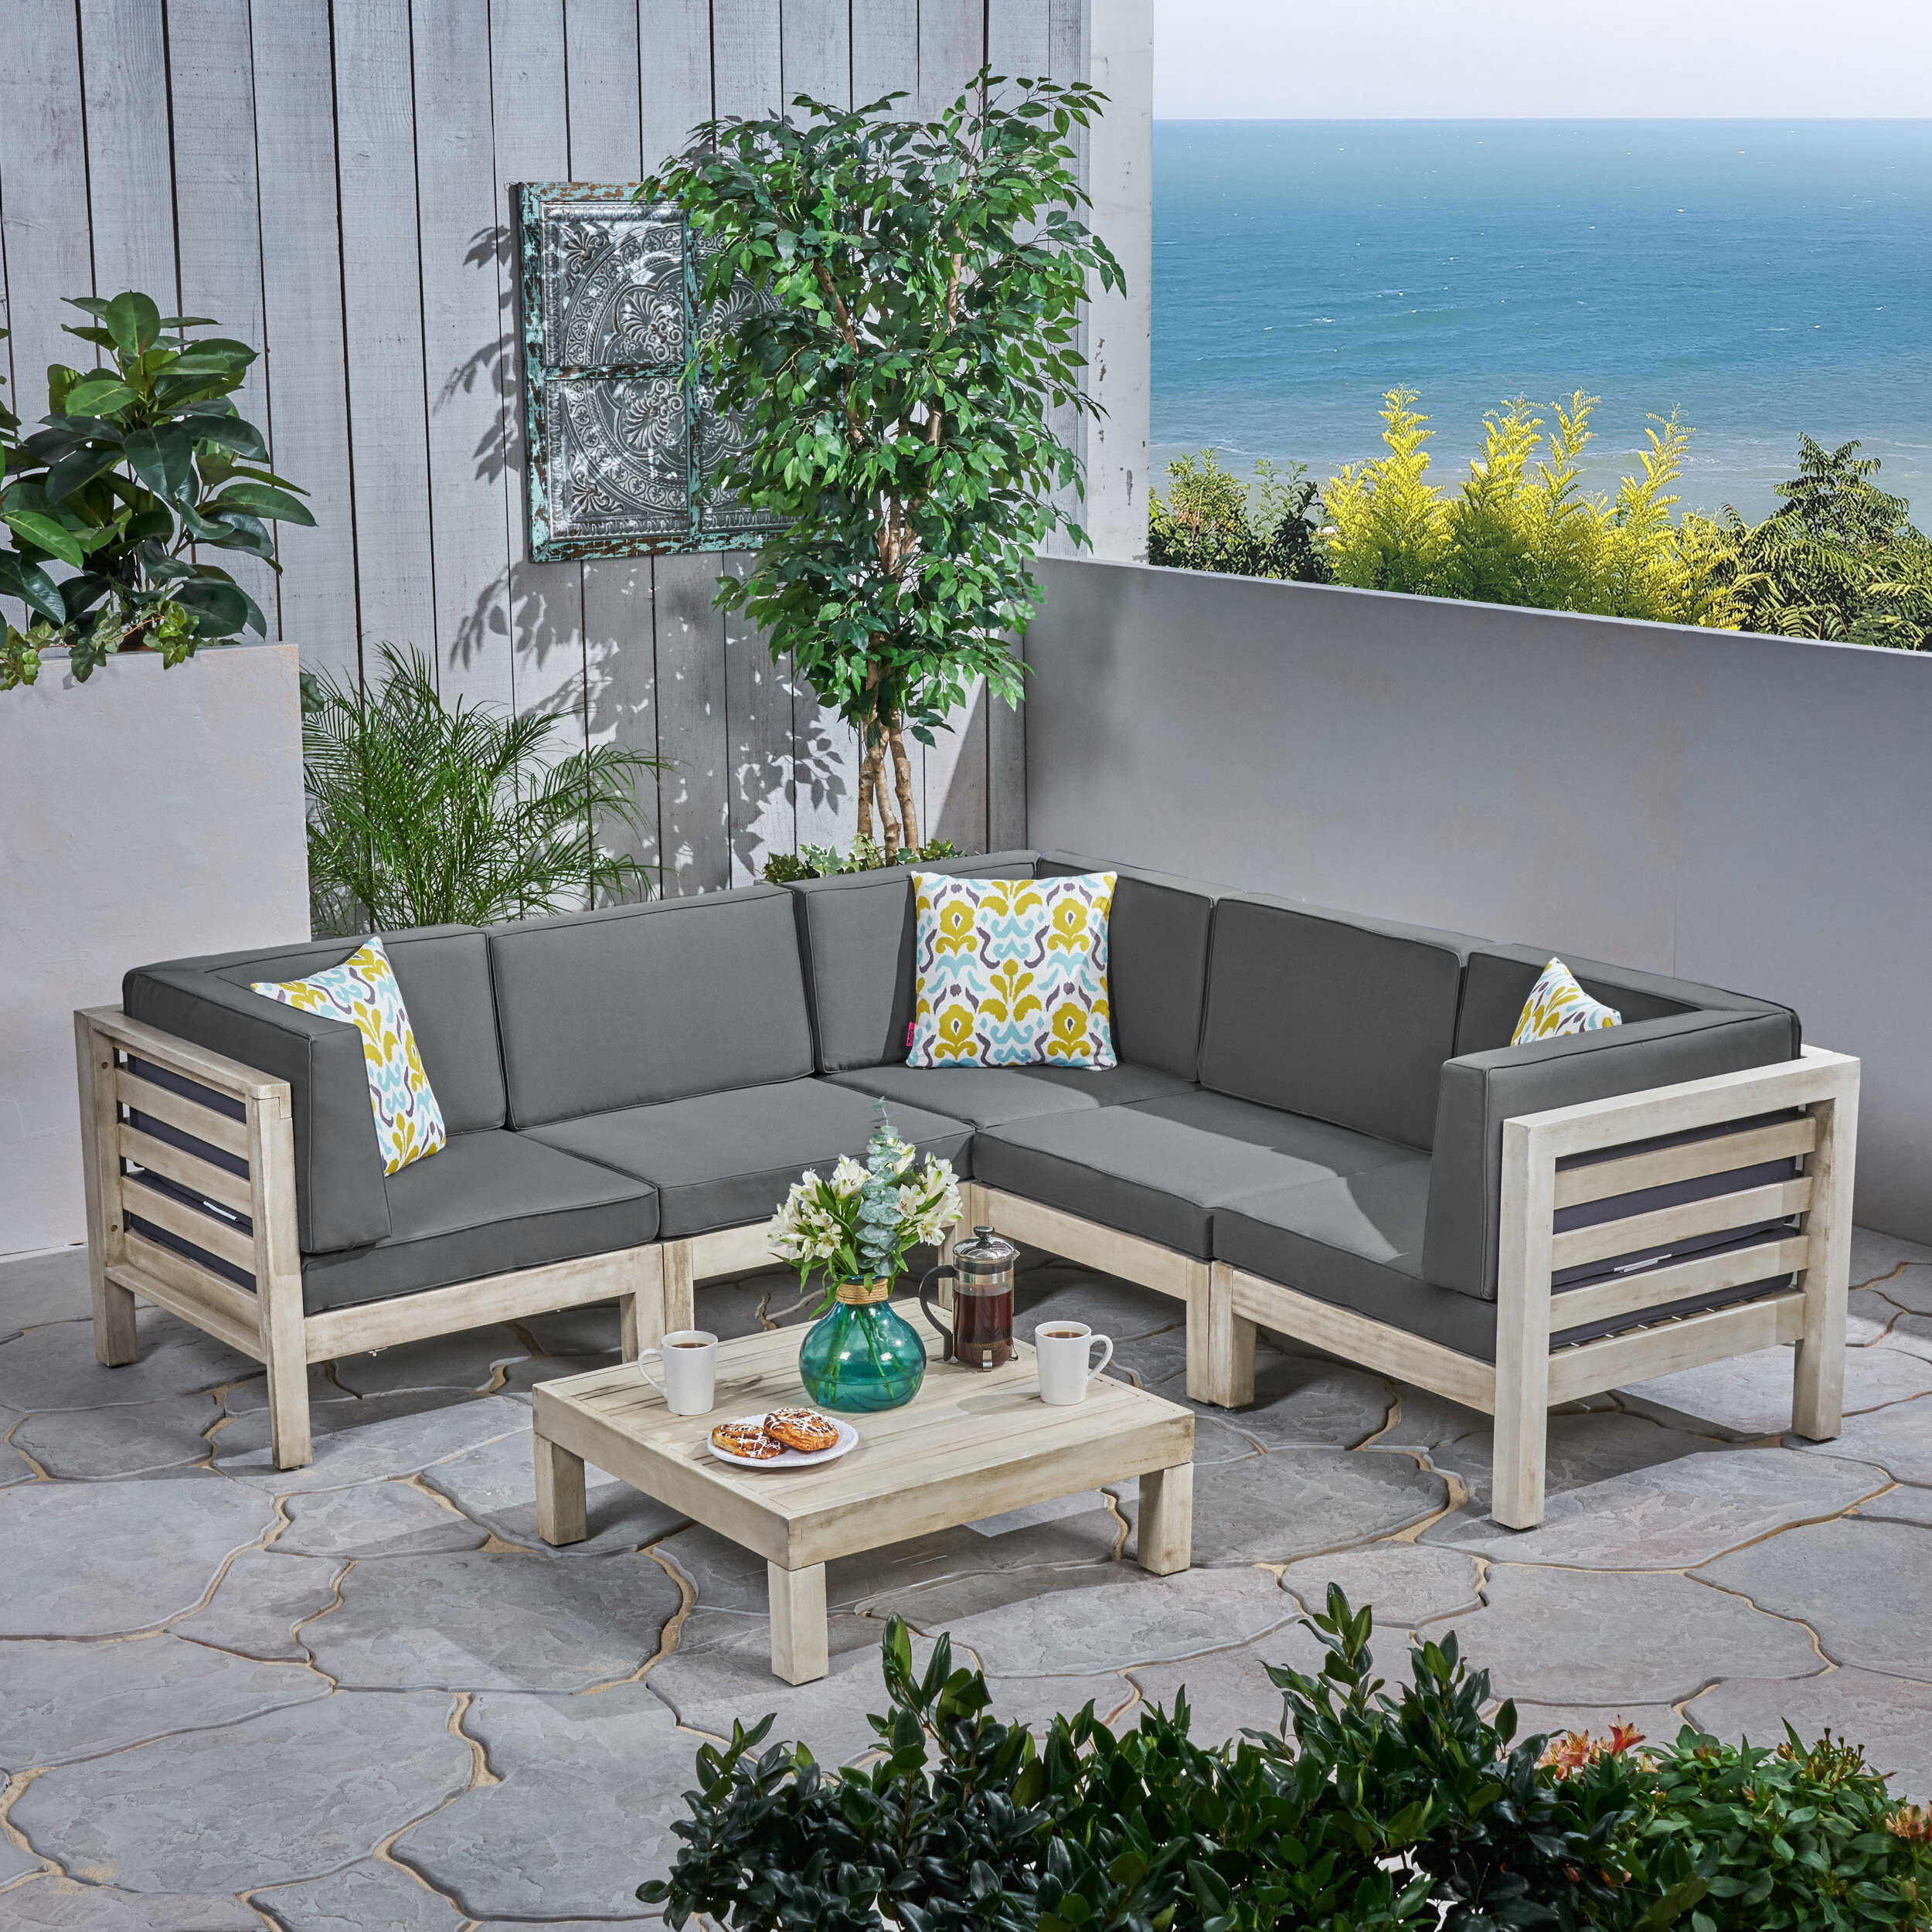 Recent Brayden Studio Seaham 6 Piece Sectional Seating Group With For Seaham Patio Sectionals With Cushions (View 9 of 20)